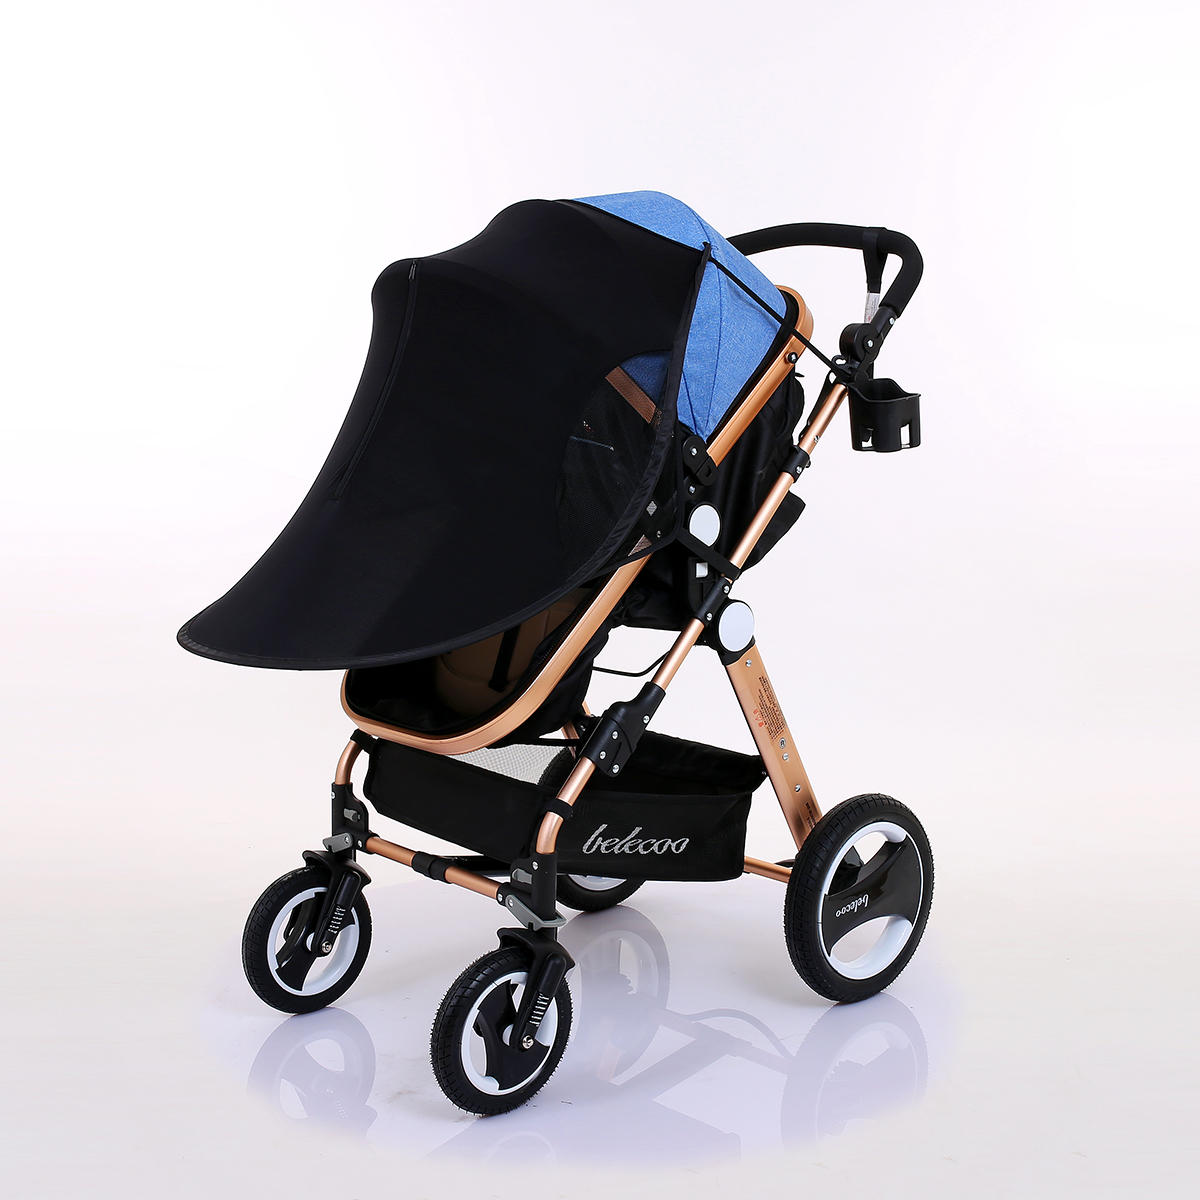 Buggy Stroller India Baby Stroller Sunshade Canopy Cover For Prams Universal Car Seat Buggy Pushchair Cap Sun Hood Stroller Accessories